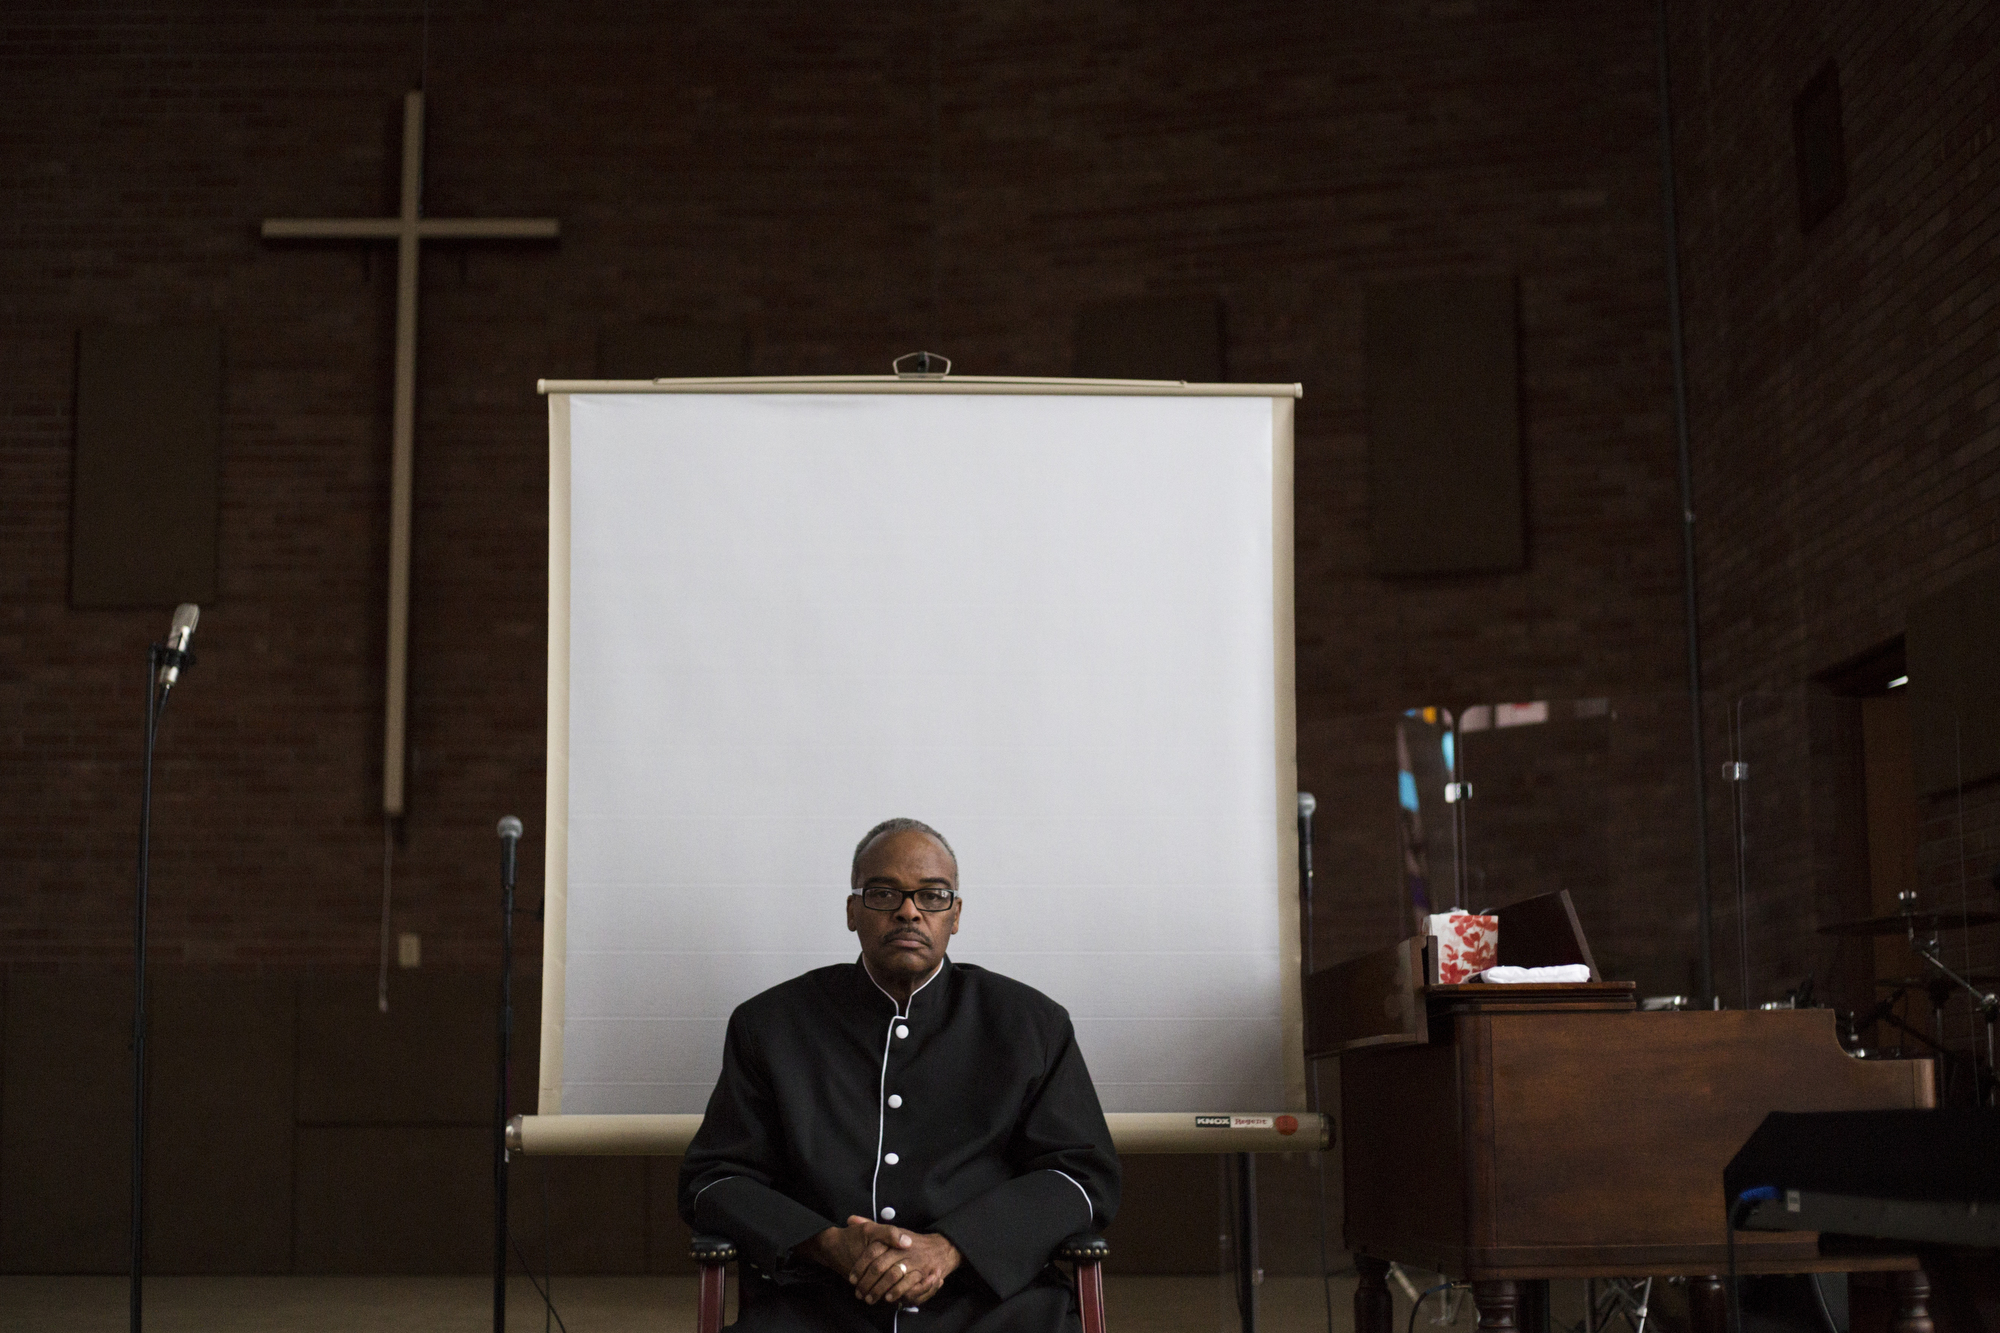 """Pastor Alfred Harris sits on the stage of his church, Saints of God Church, in Flint, Mich., on Thursday, March 3, 2016. Harris is an active member of the Concerned Pastors for Social Action, a group that had been active in advocating for Flint residents amidst the city's ongoing water crisis but also came under fire locally amid allegations that the group had received bottle water donations with their own congregations from the state long before news of the lead had been released. """"I'm not a politician. I'm not a scientist. All I know is this water is still poison,"""" Harris said. For The New York Times."""